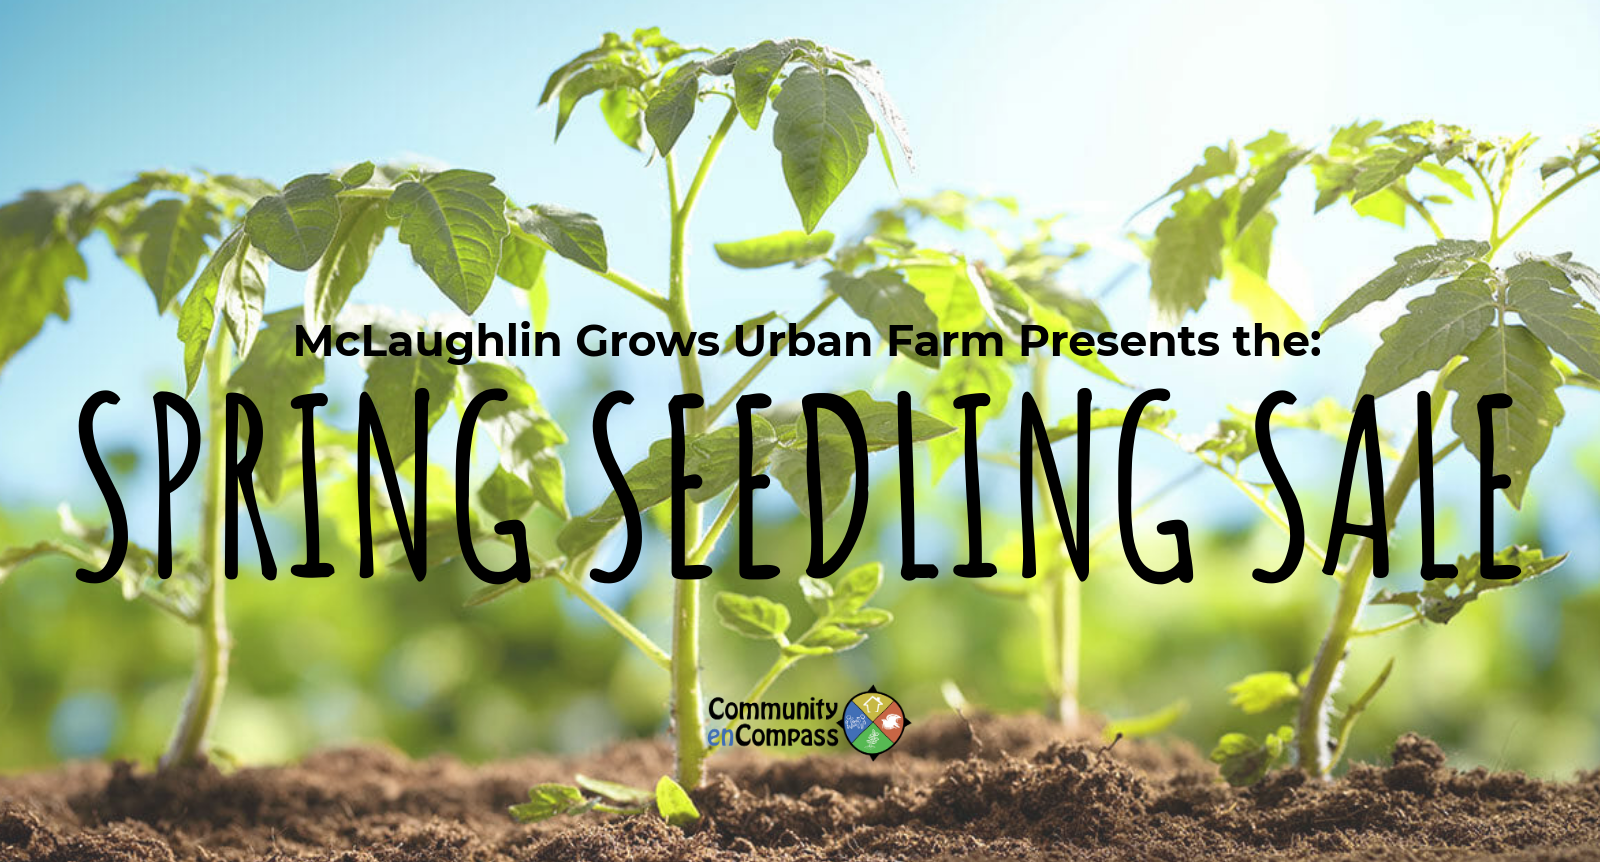 Spring seedling sale.png